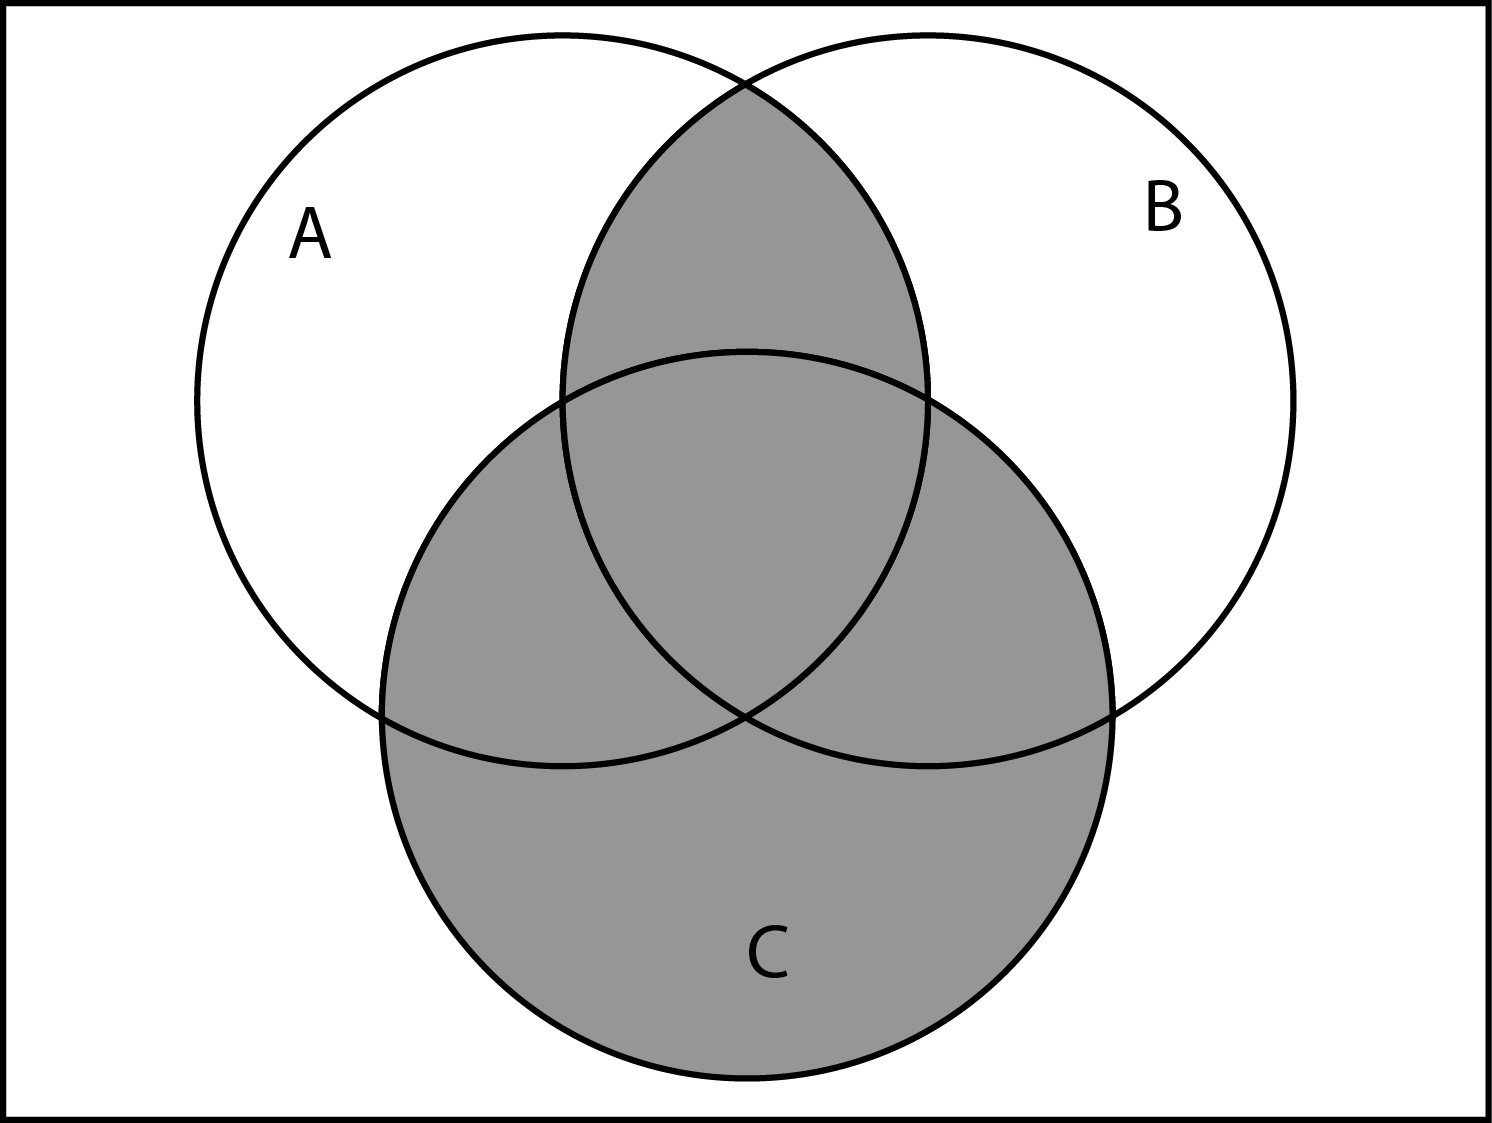 Index of johwd63181mat142venn diagram templates a int b union c finalg pooptronica